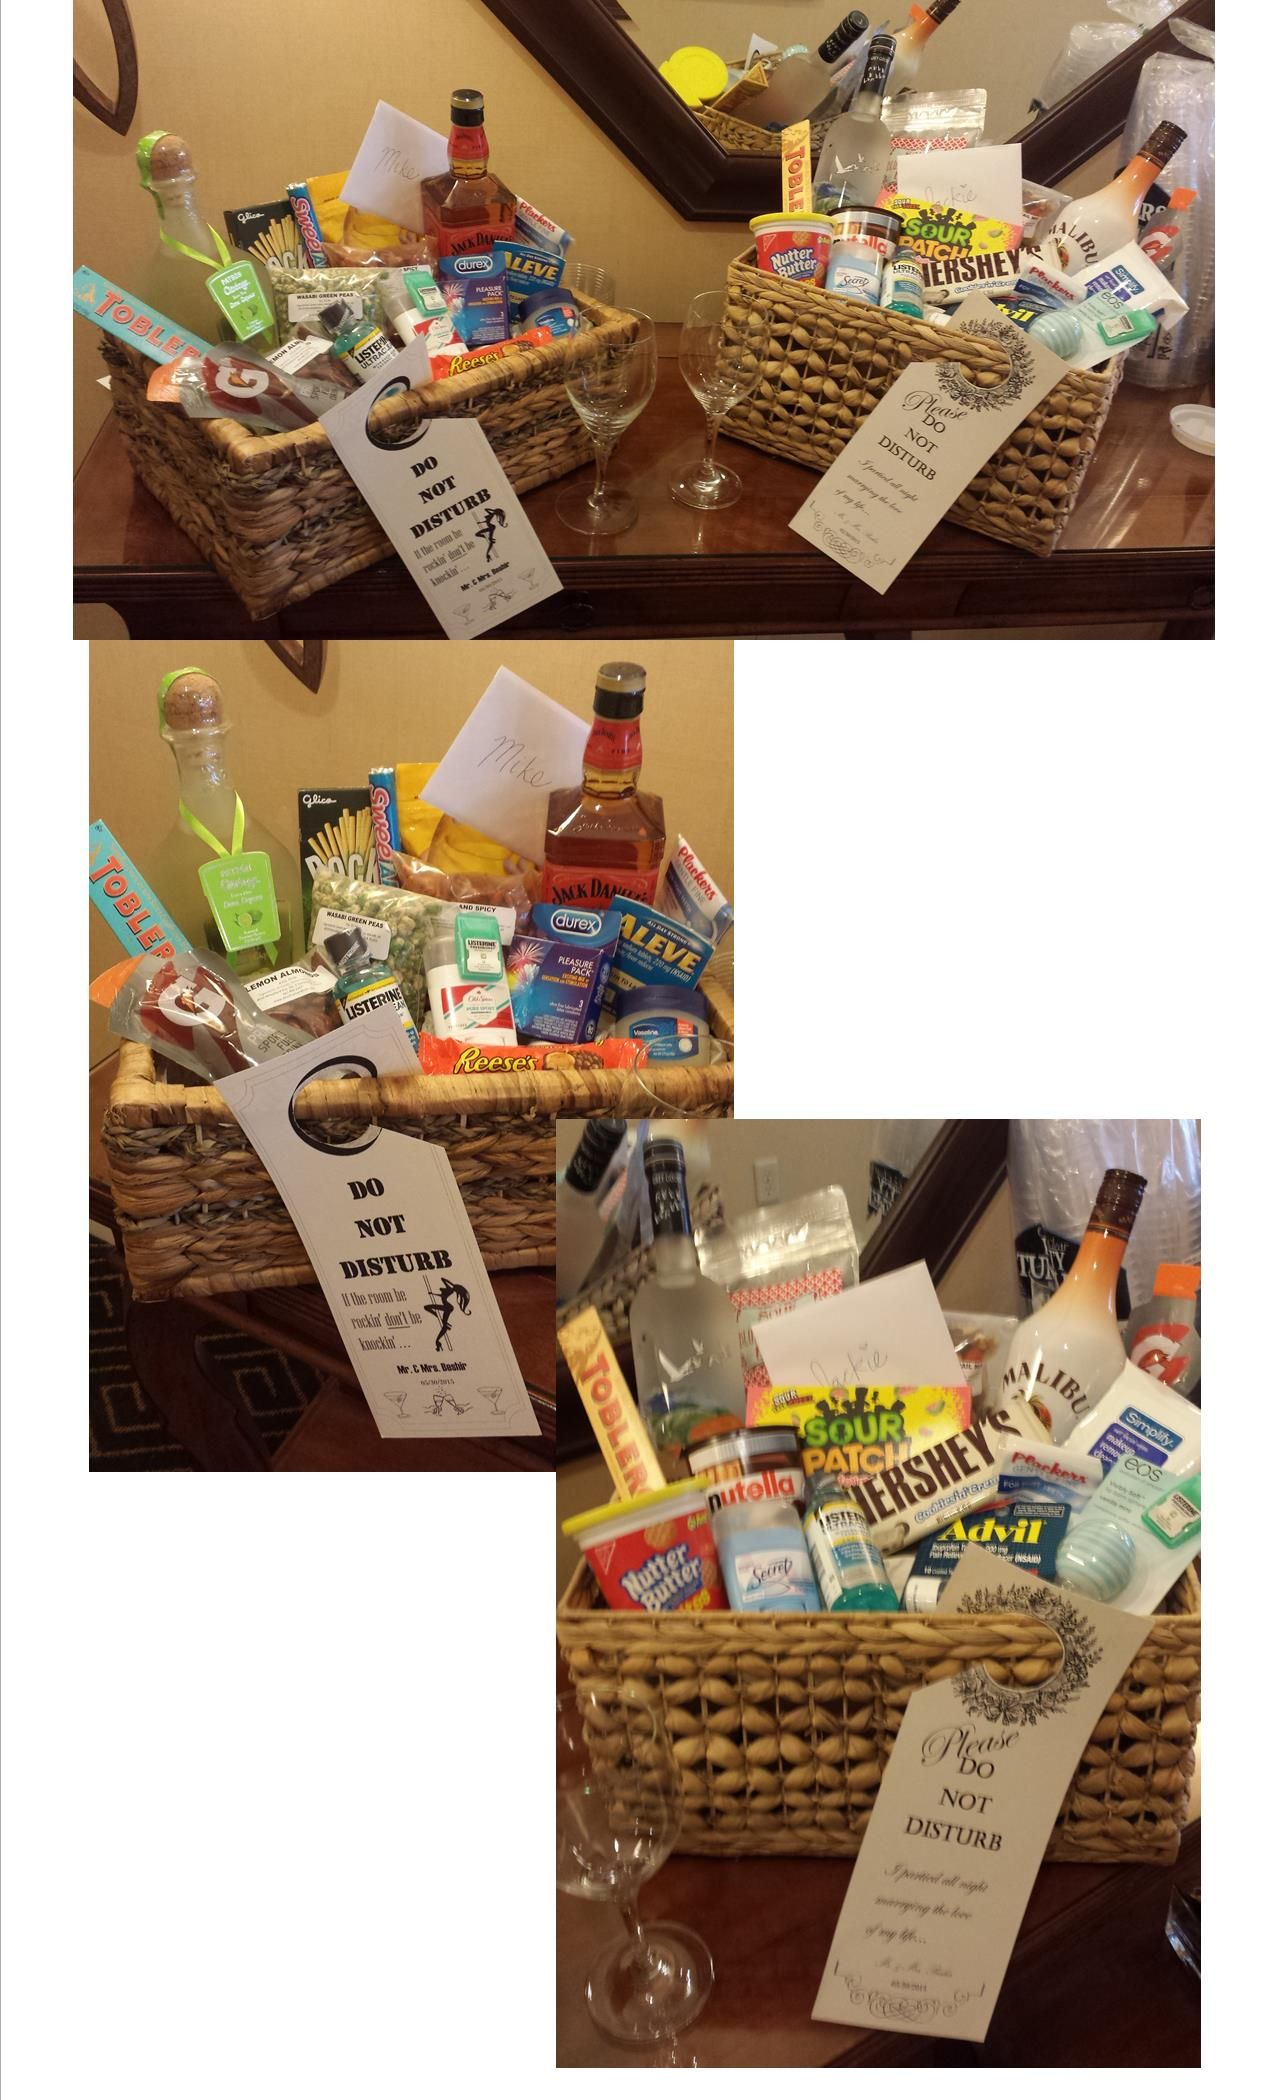 His Hers Wedding Night Baskets Weddings Honeymoon Gifts Made By